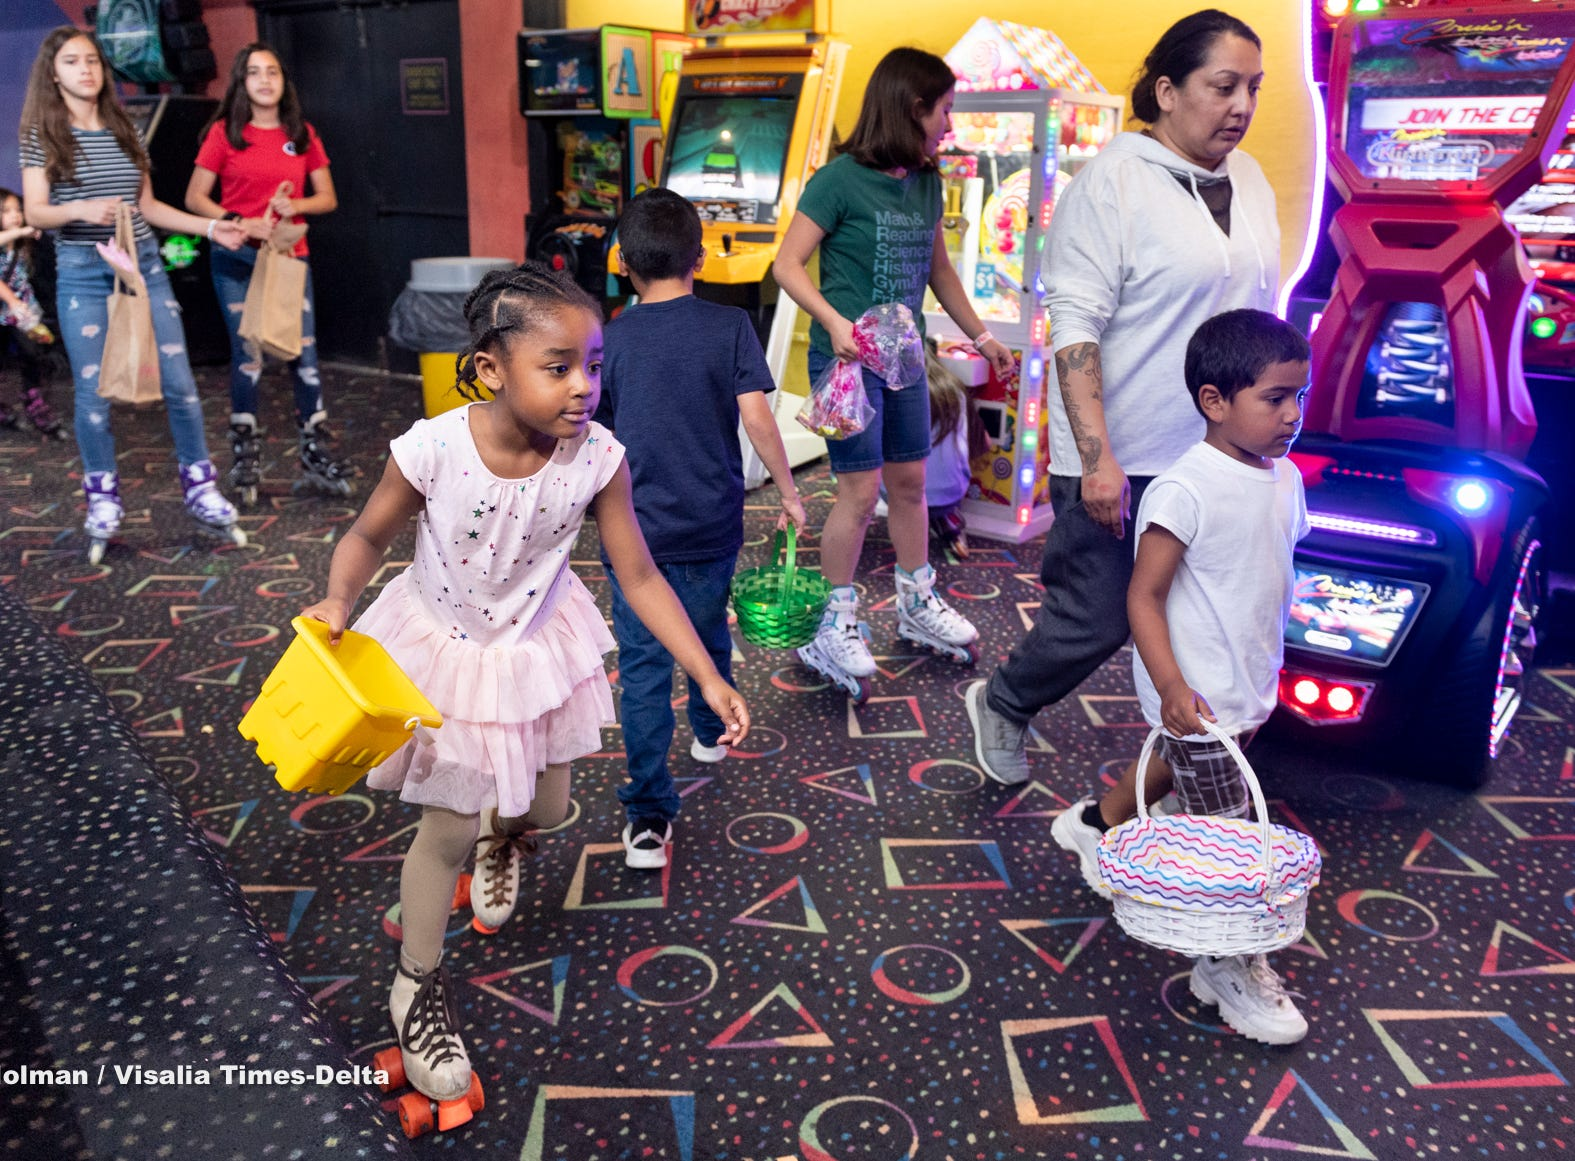 Aniessa Sanders, 6, left, and other skaters at Roller Towne in Visalia raced for candy and prizes during their pre-Easter egg hunt on Friday, April 19, 2019.